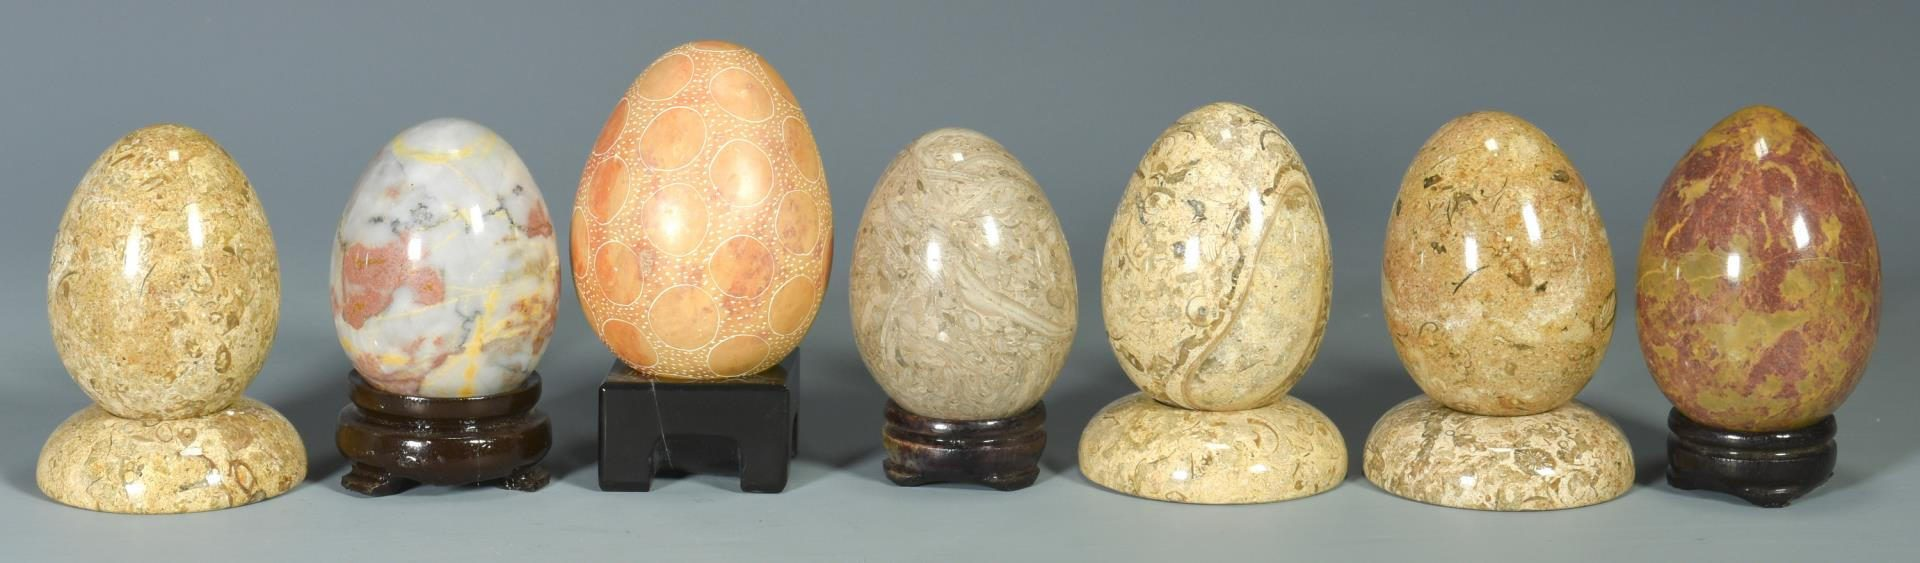 Lot 221: Large Collection of Polished Mineral Specimens